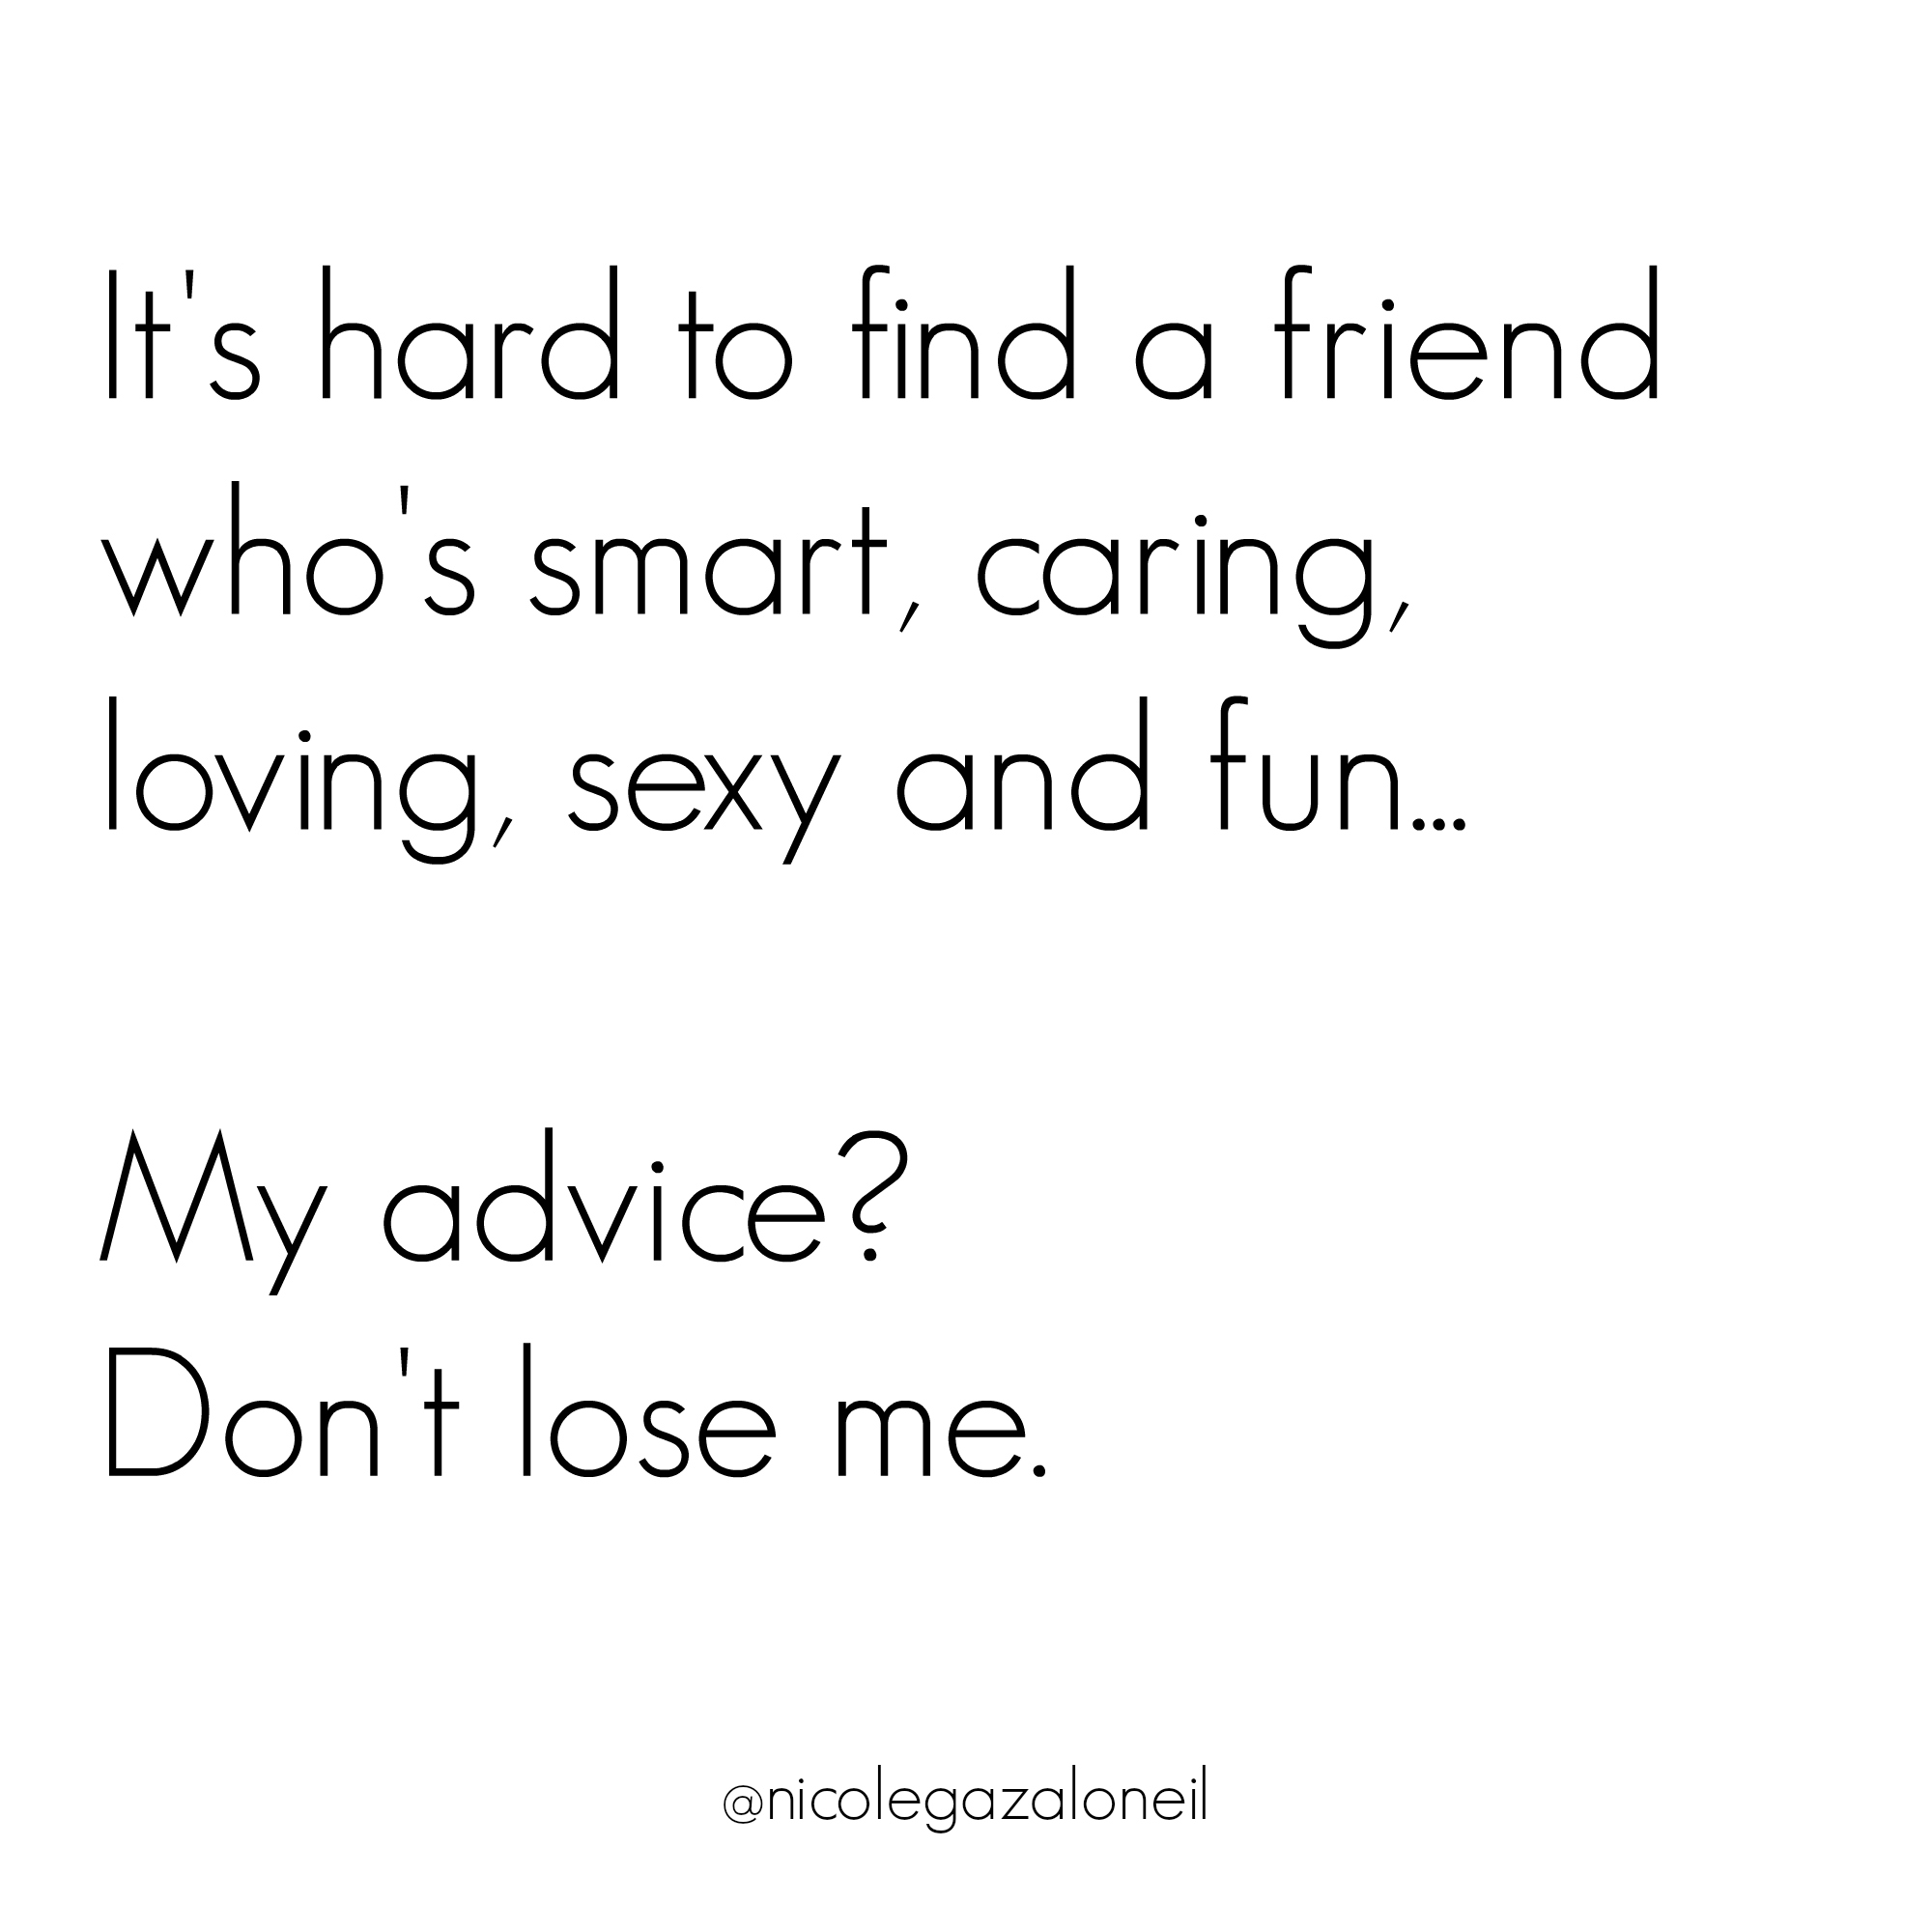 It's Hard to Find a Friend Who Is Smart, Caring, Loving, Sexy and Fun... Don't Lose Me.jpg